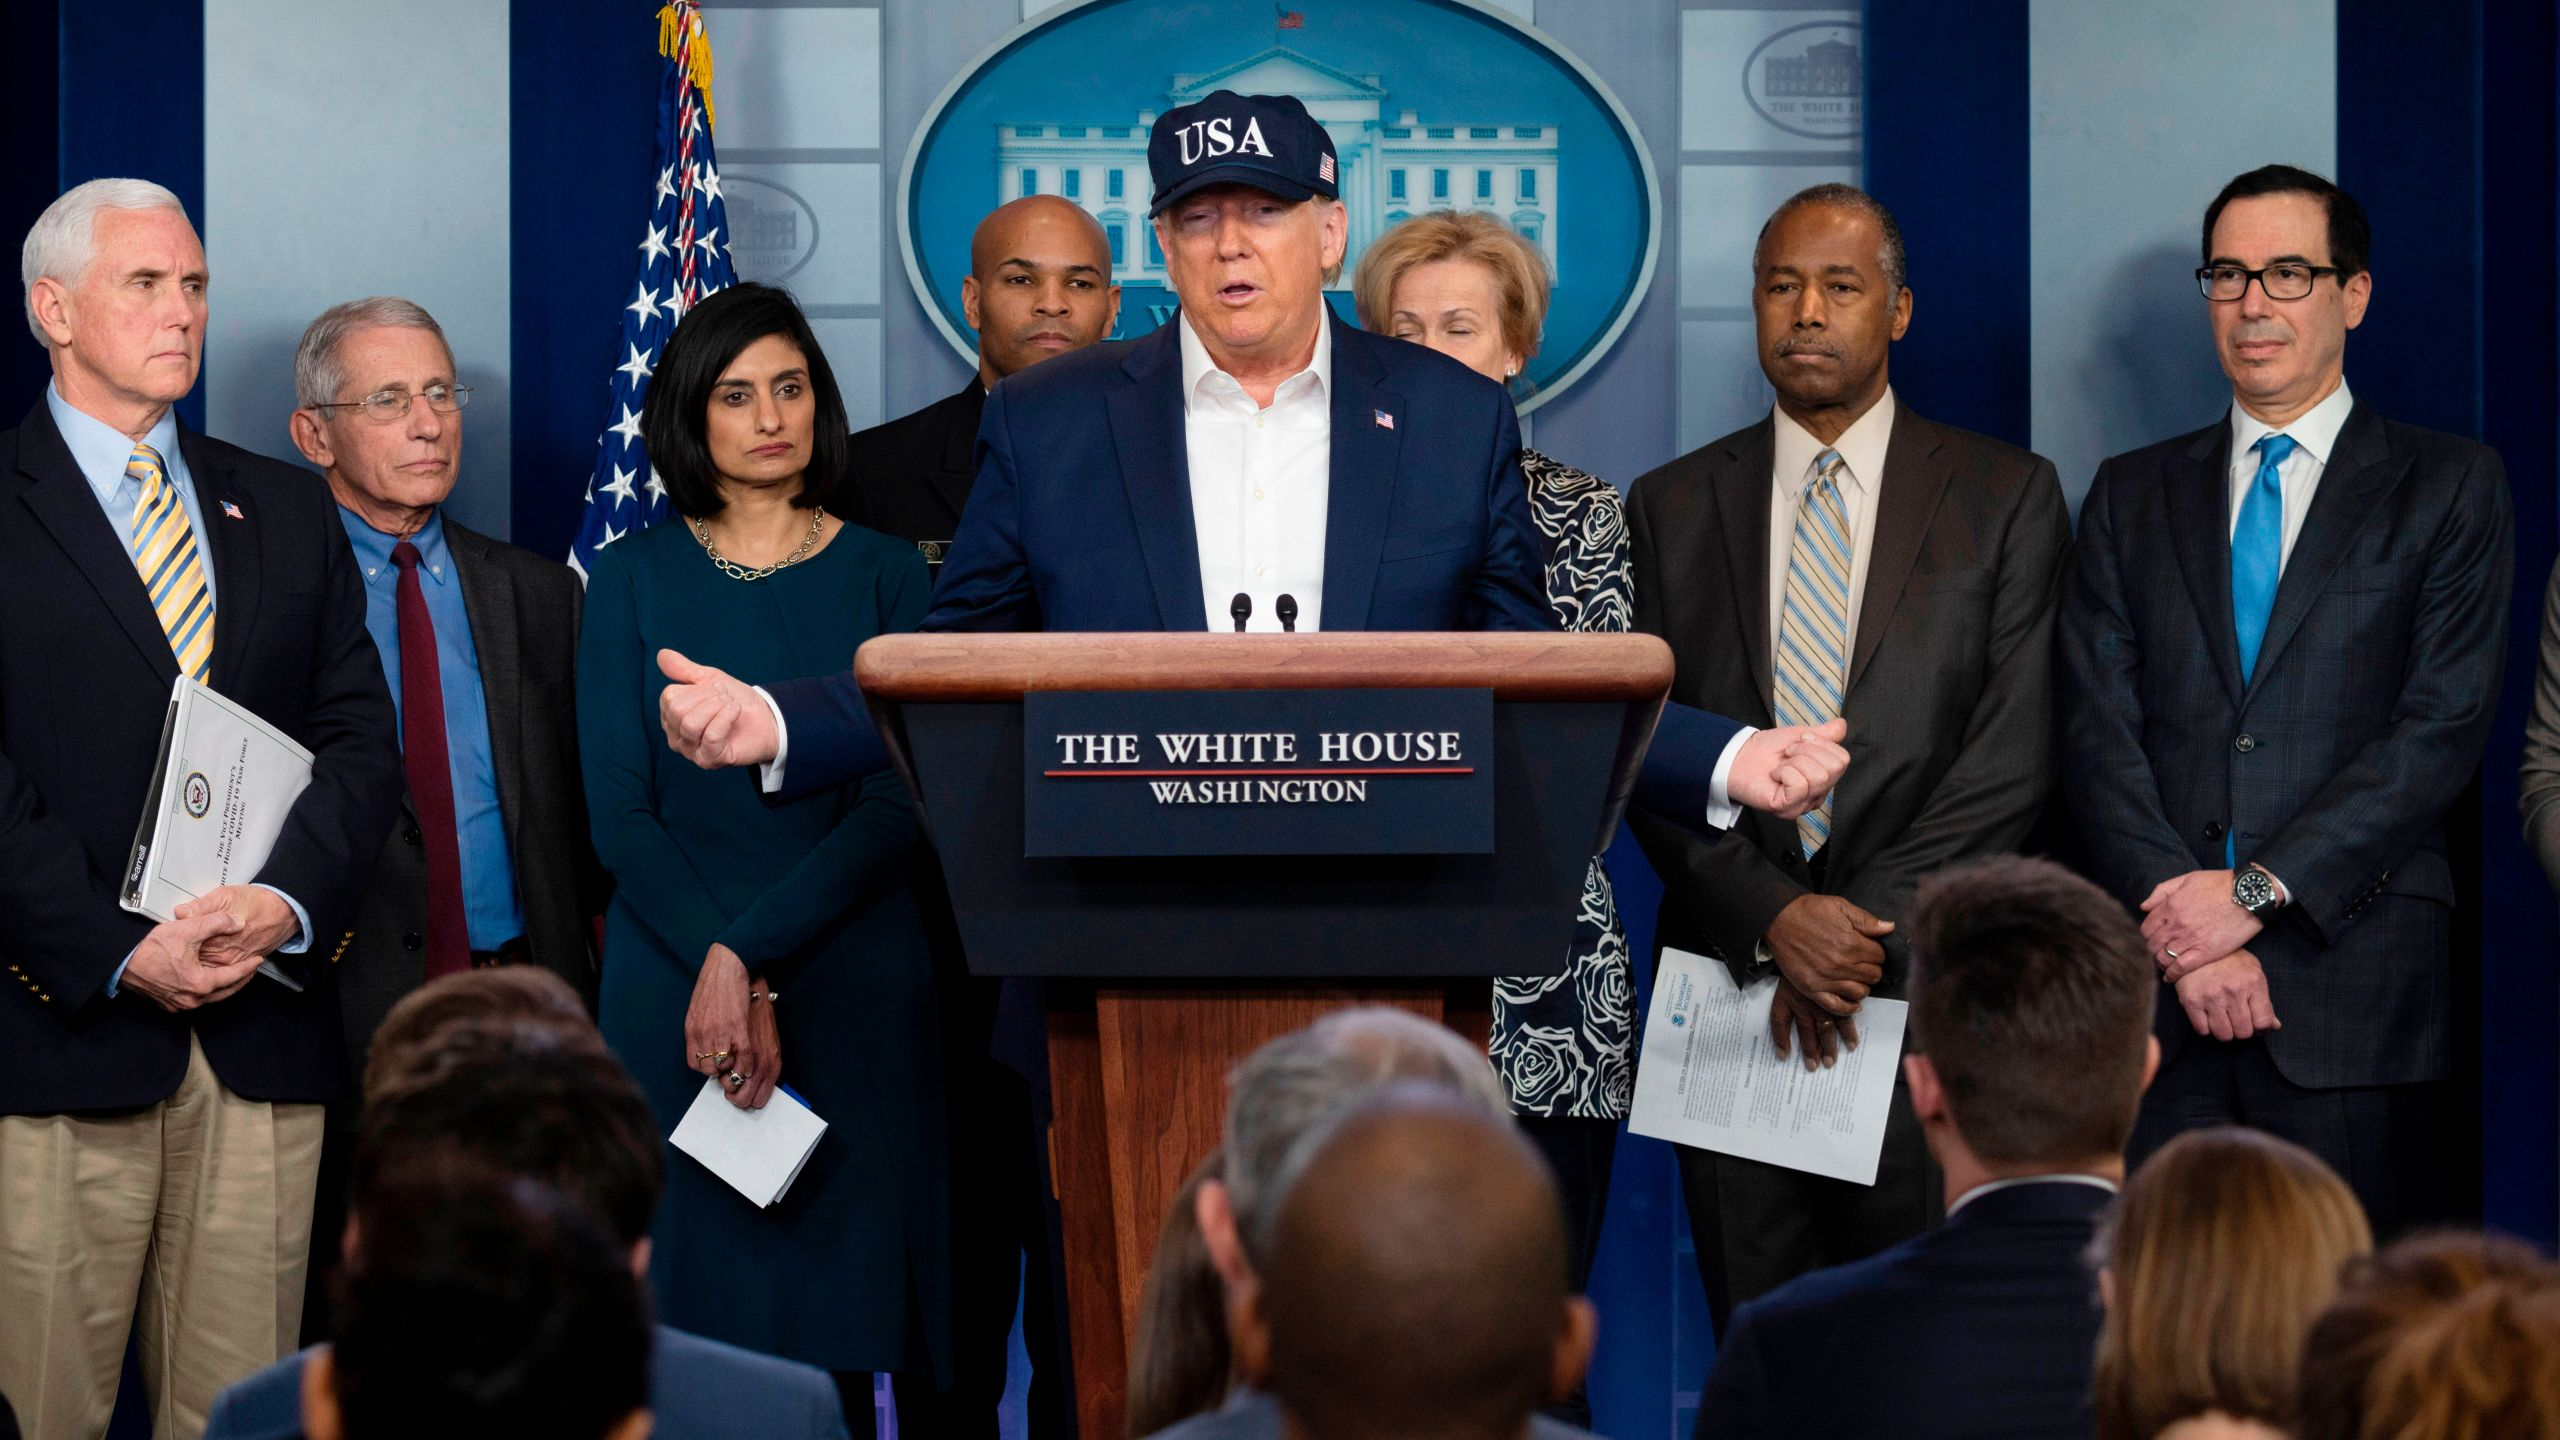 Donald Trump gives a press briefing about the coronavirus outbreak alongside members of the White House coronavirus task force at the White House on March 14, 2020. (JIM WATSON/AFP via Getty Images)